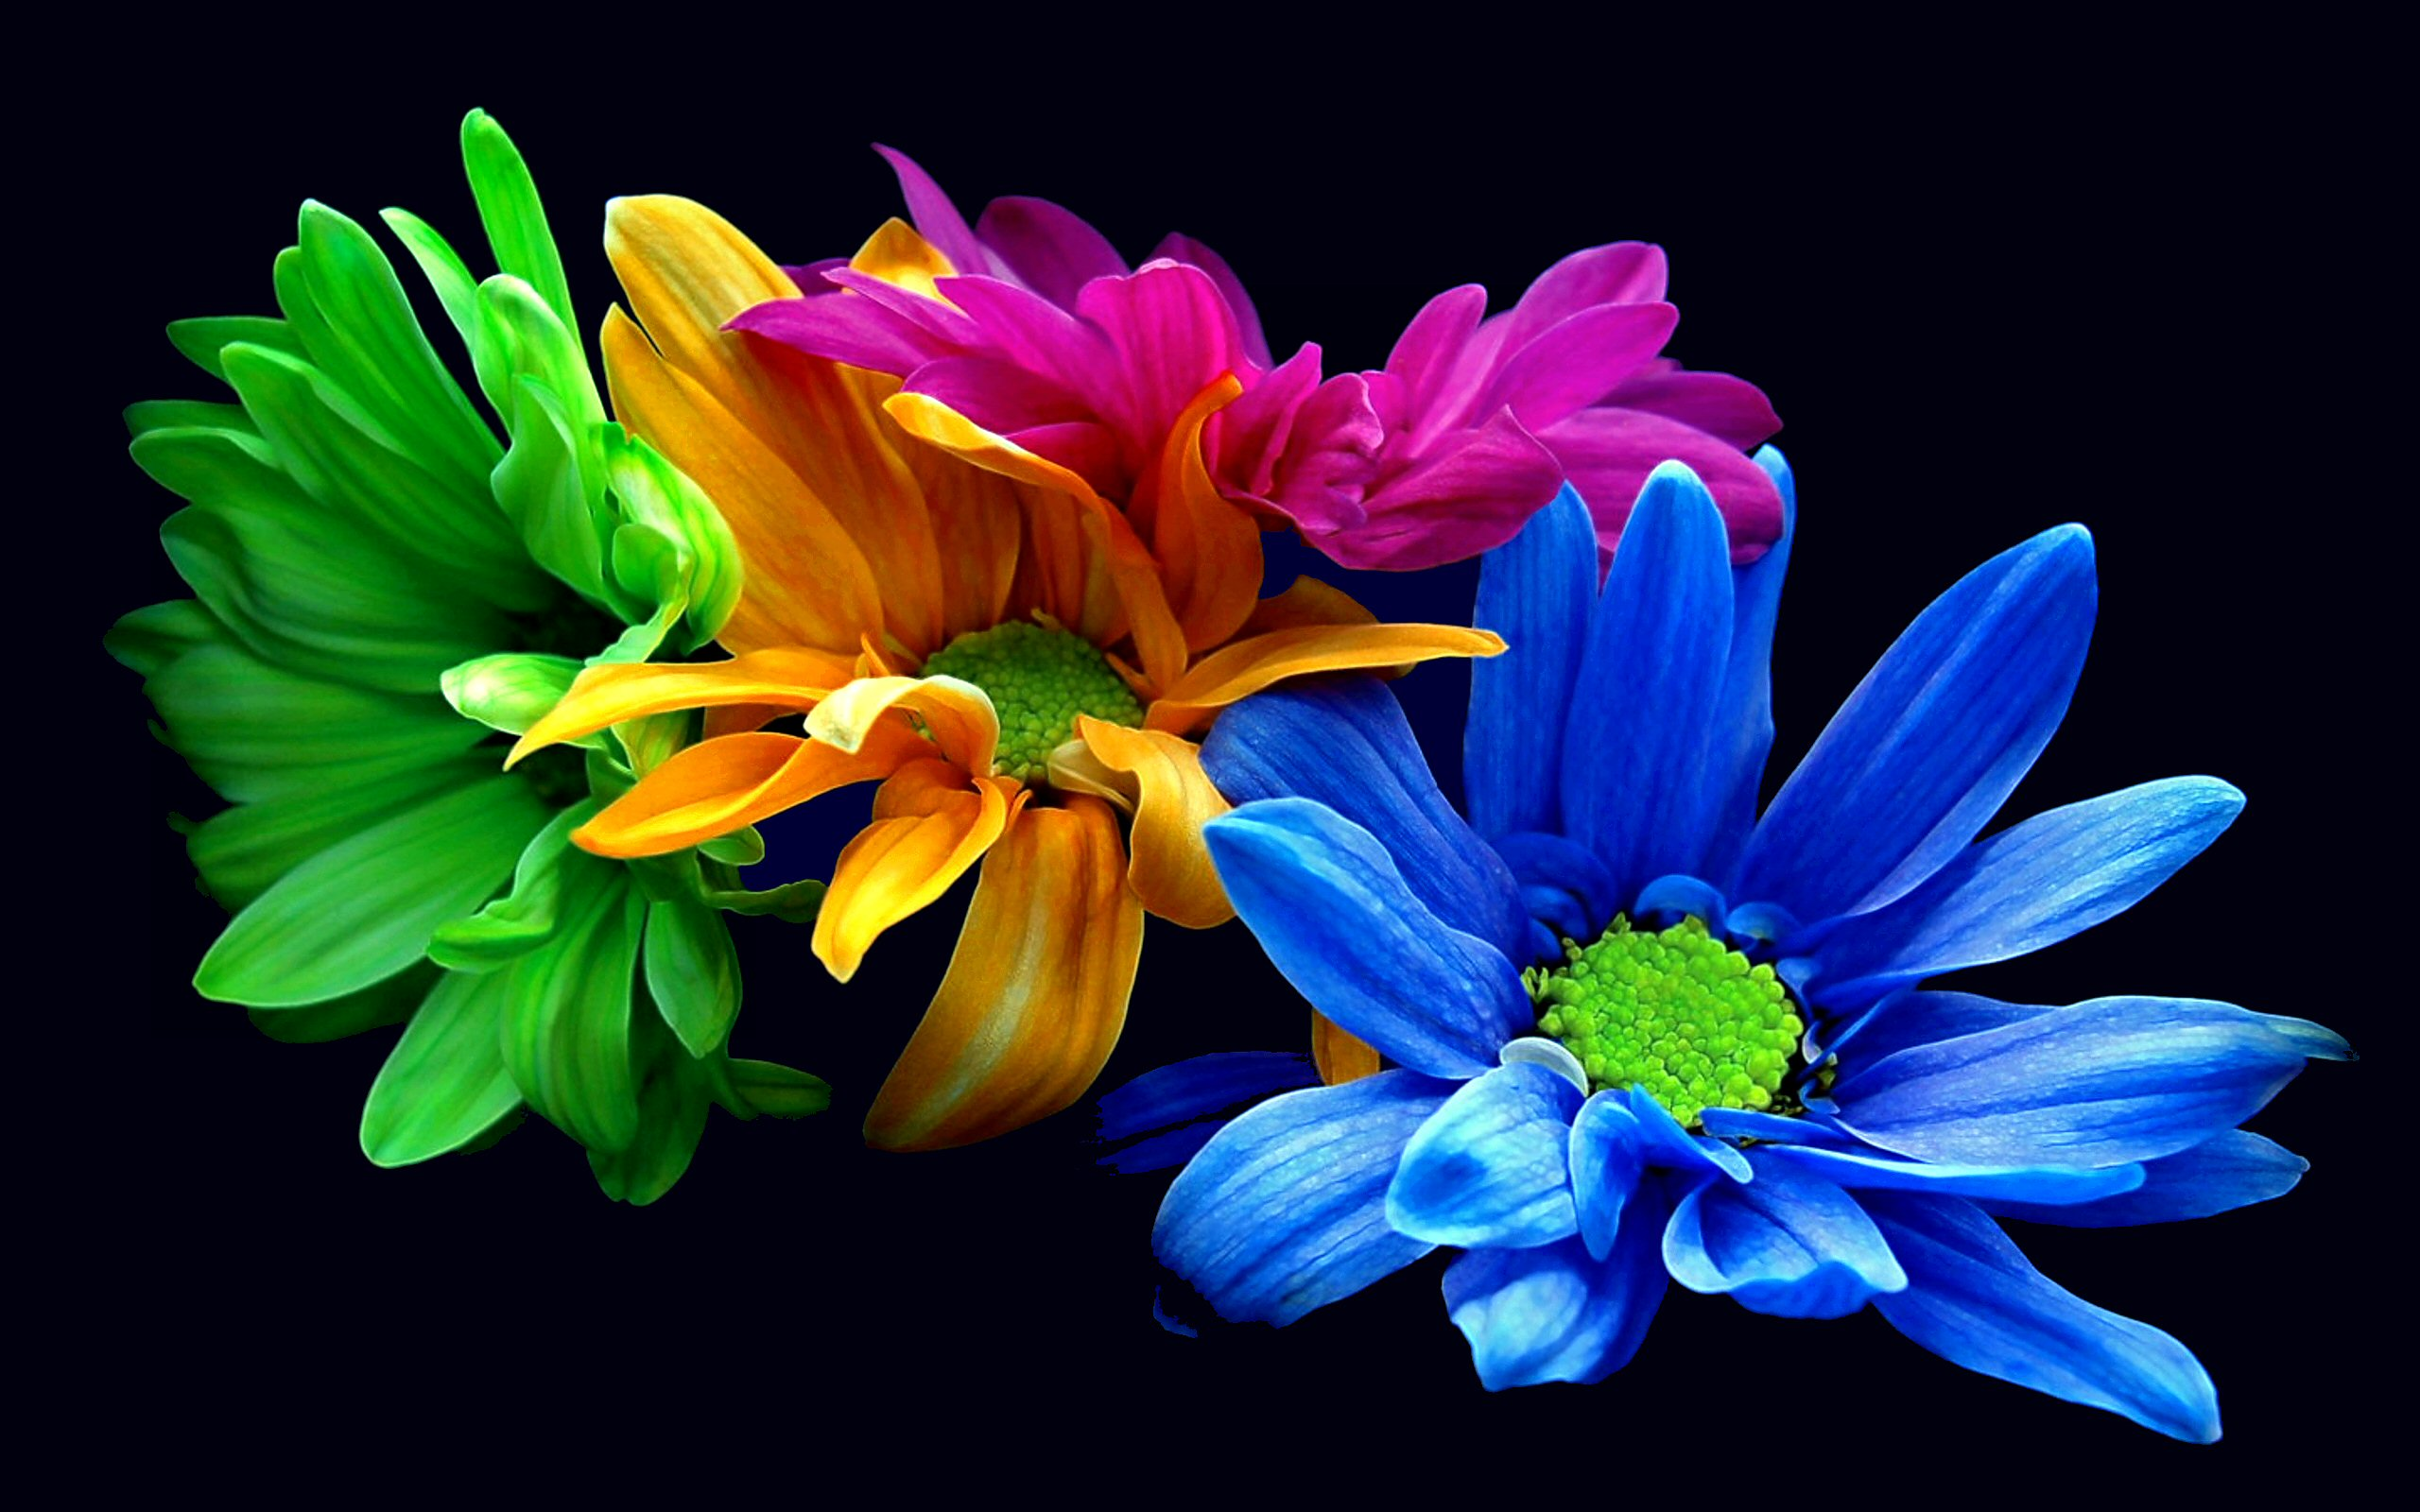 Colorful Flowers Wallpapers HD 2560x1600